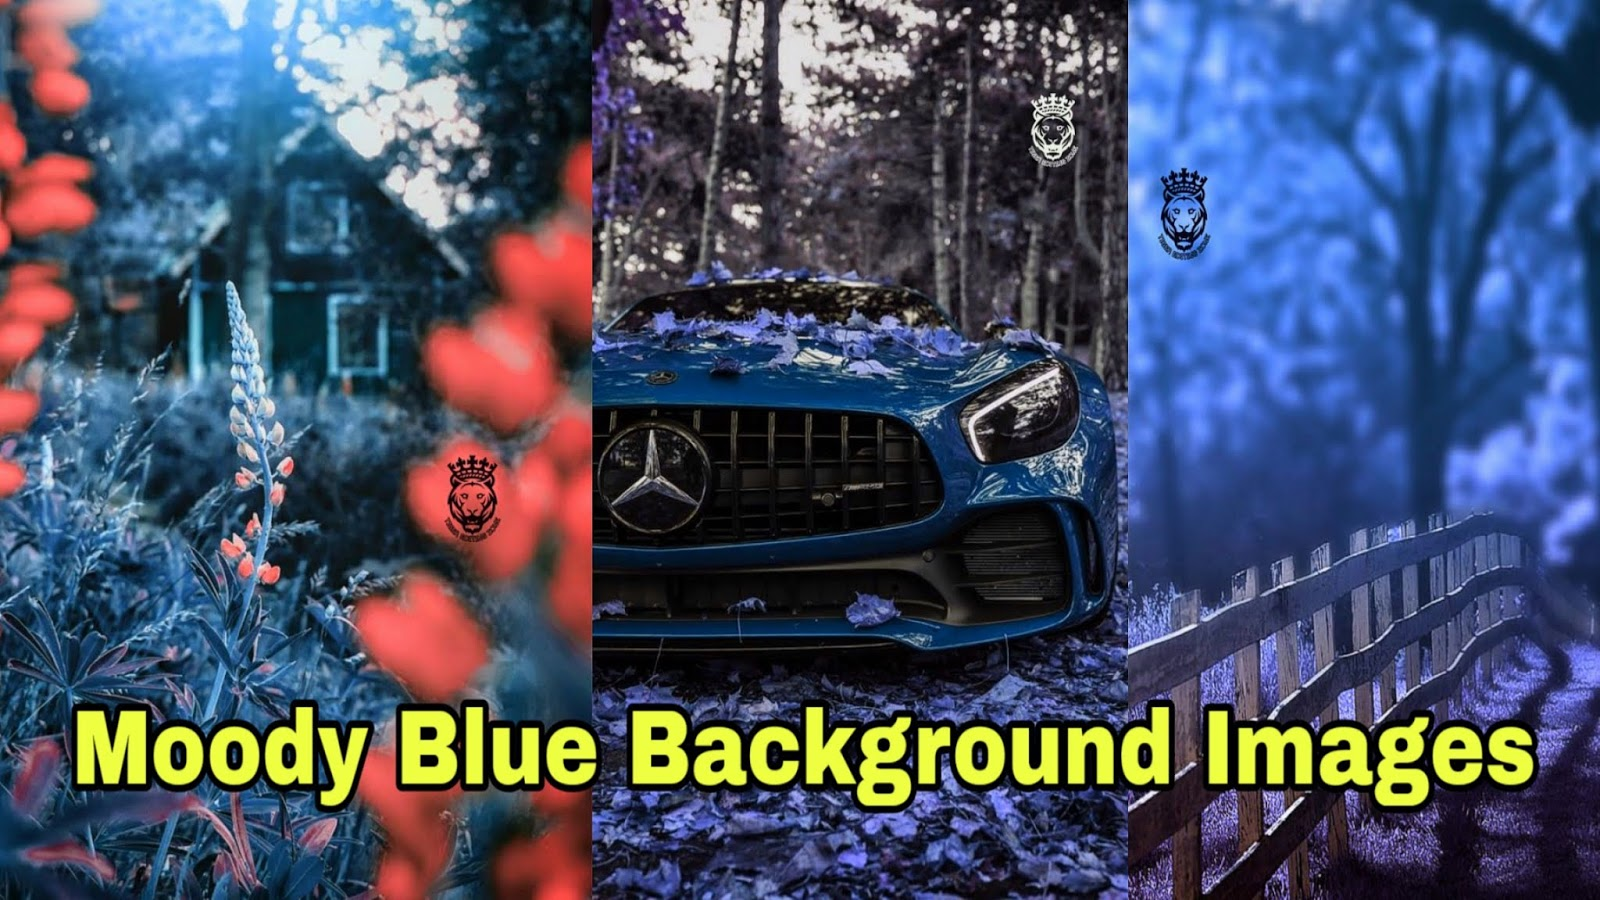 Blue Background HD for Editing | Moody Blue Photo Editing Background Images